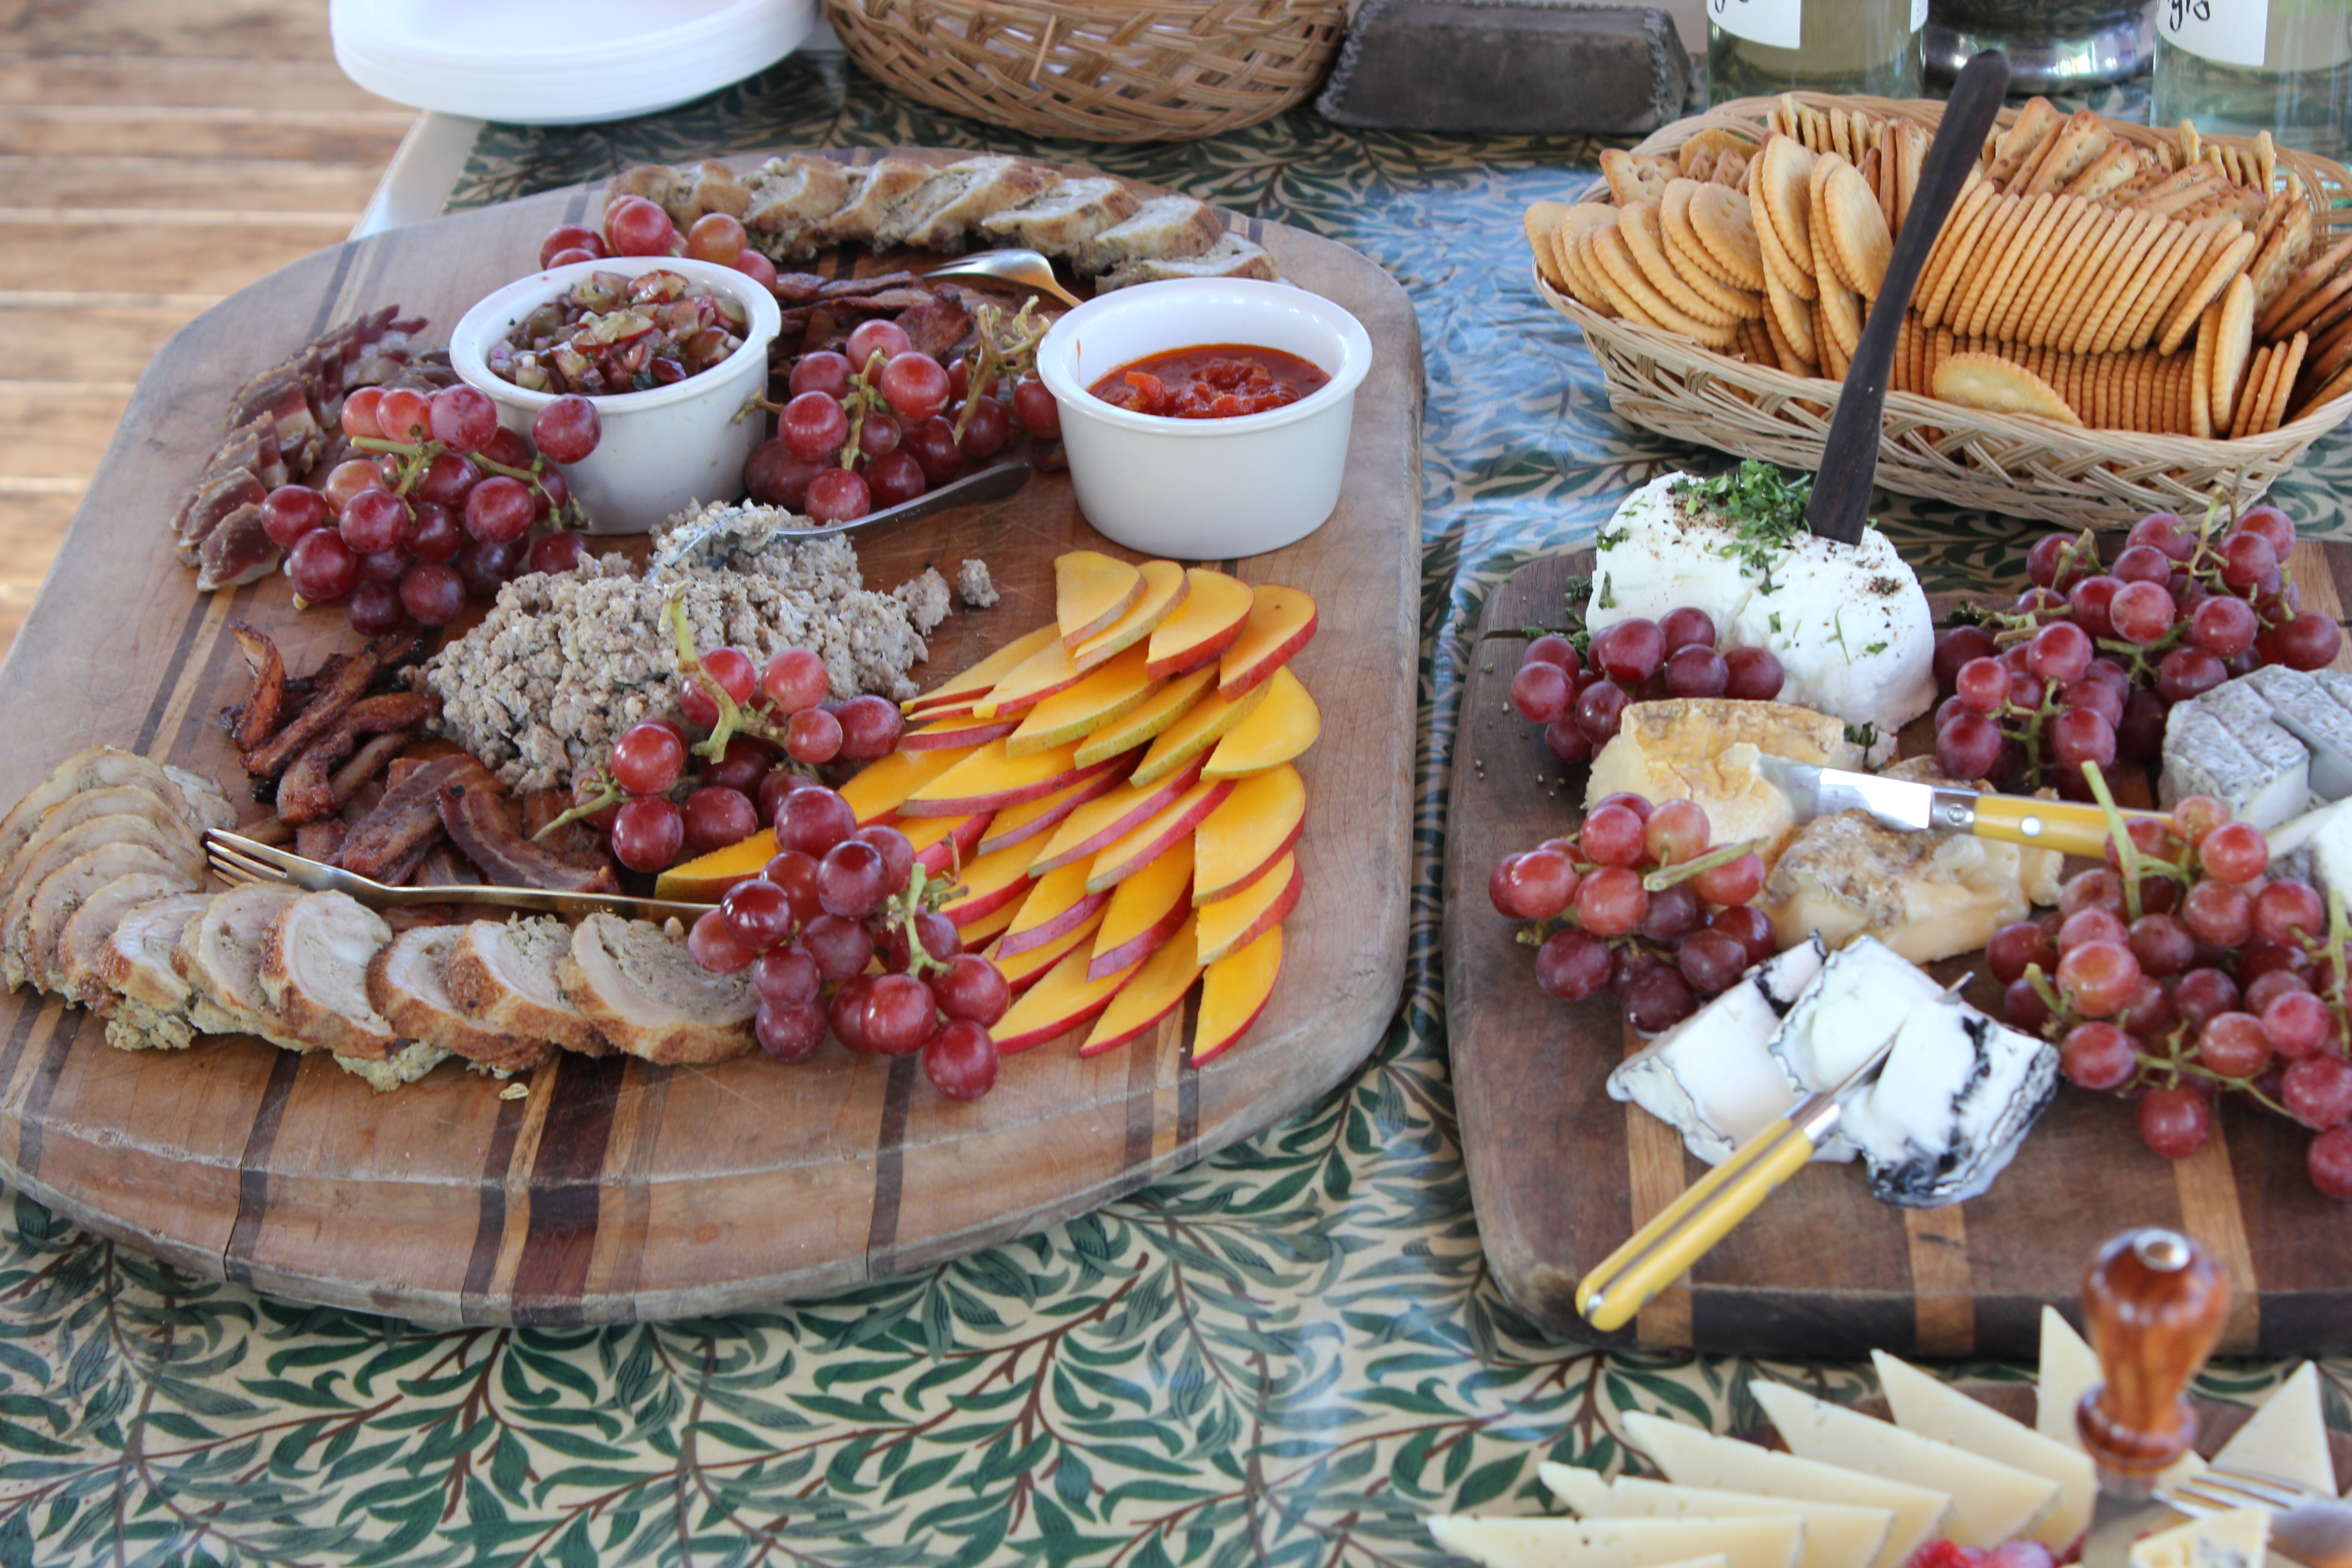 Rustic cheese boards